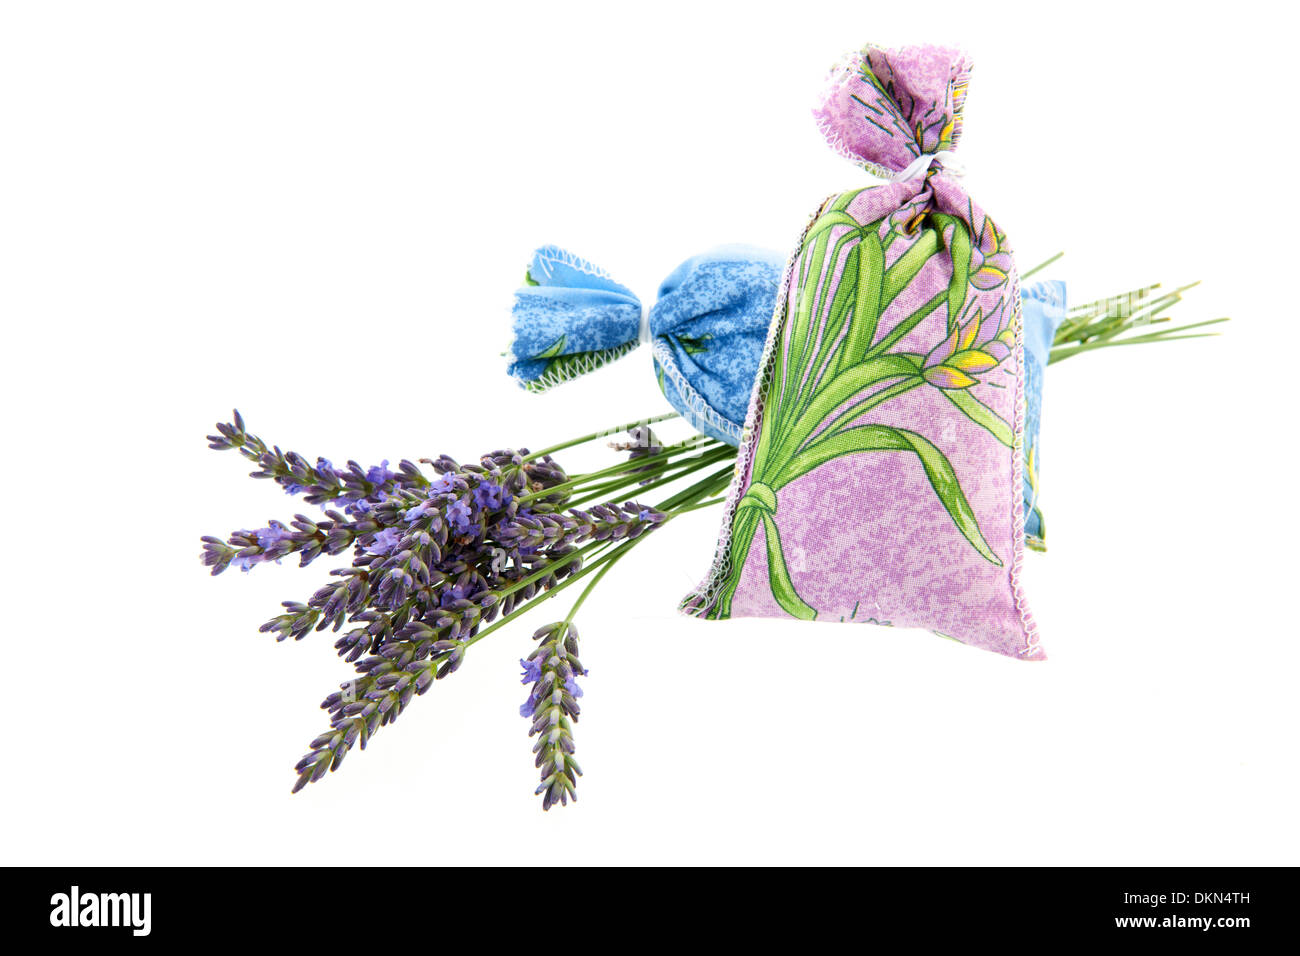 French lavender and dry flowers - Stock Image